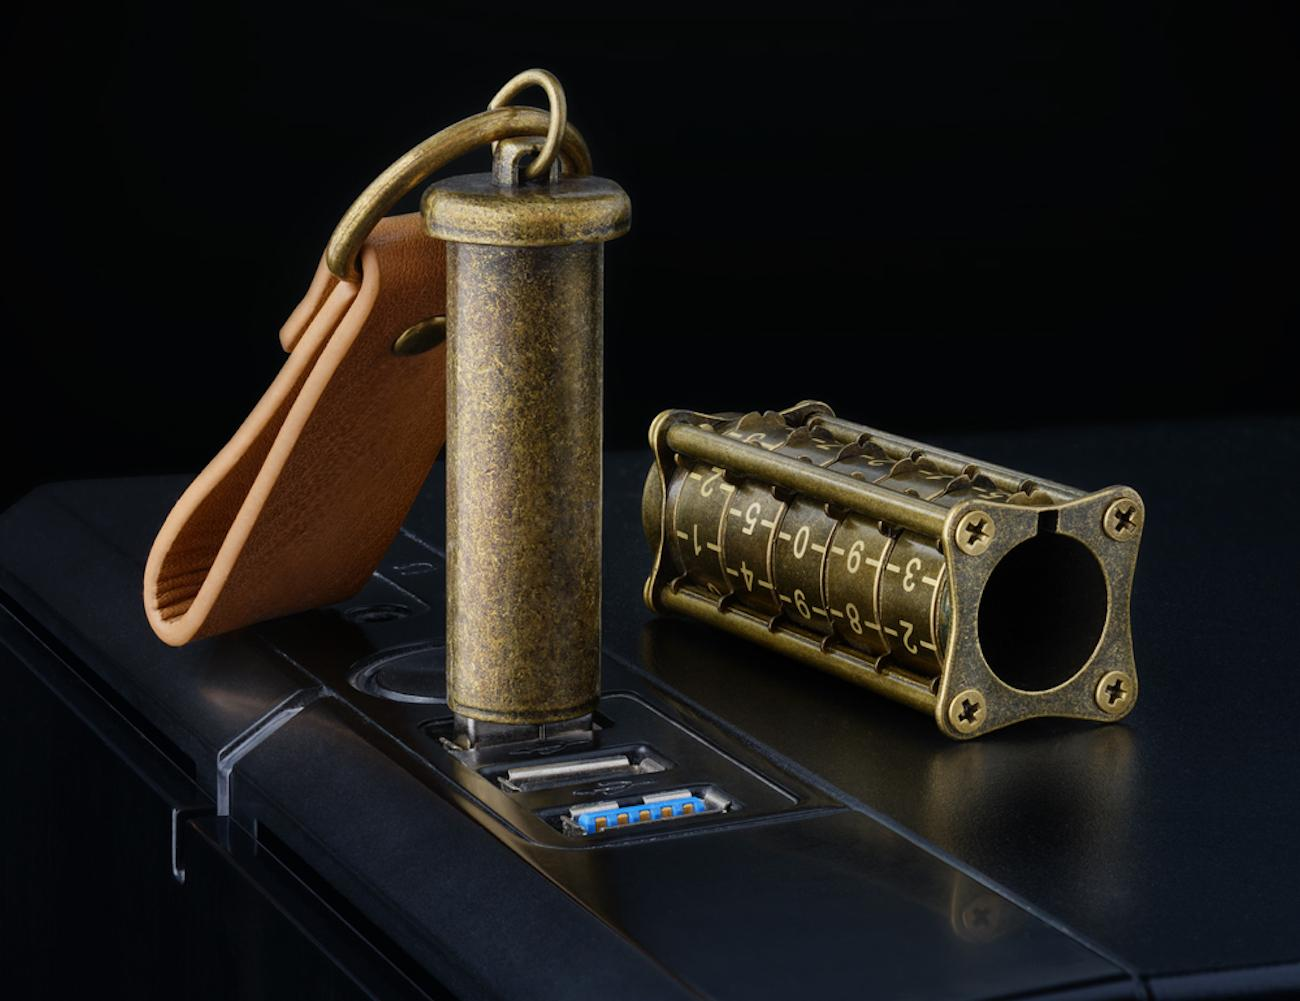 Cryptex+Antique+Gold+32+GB+USB+Flash+Drive